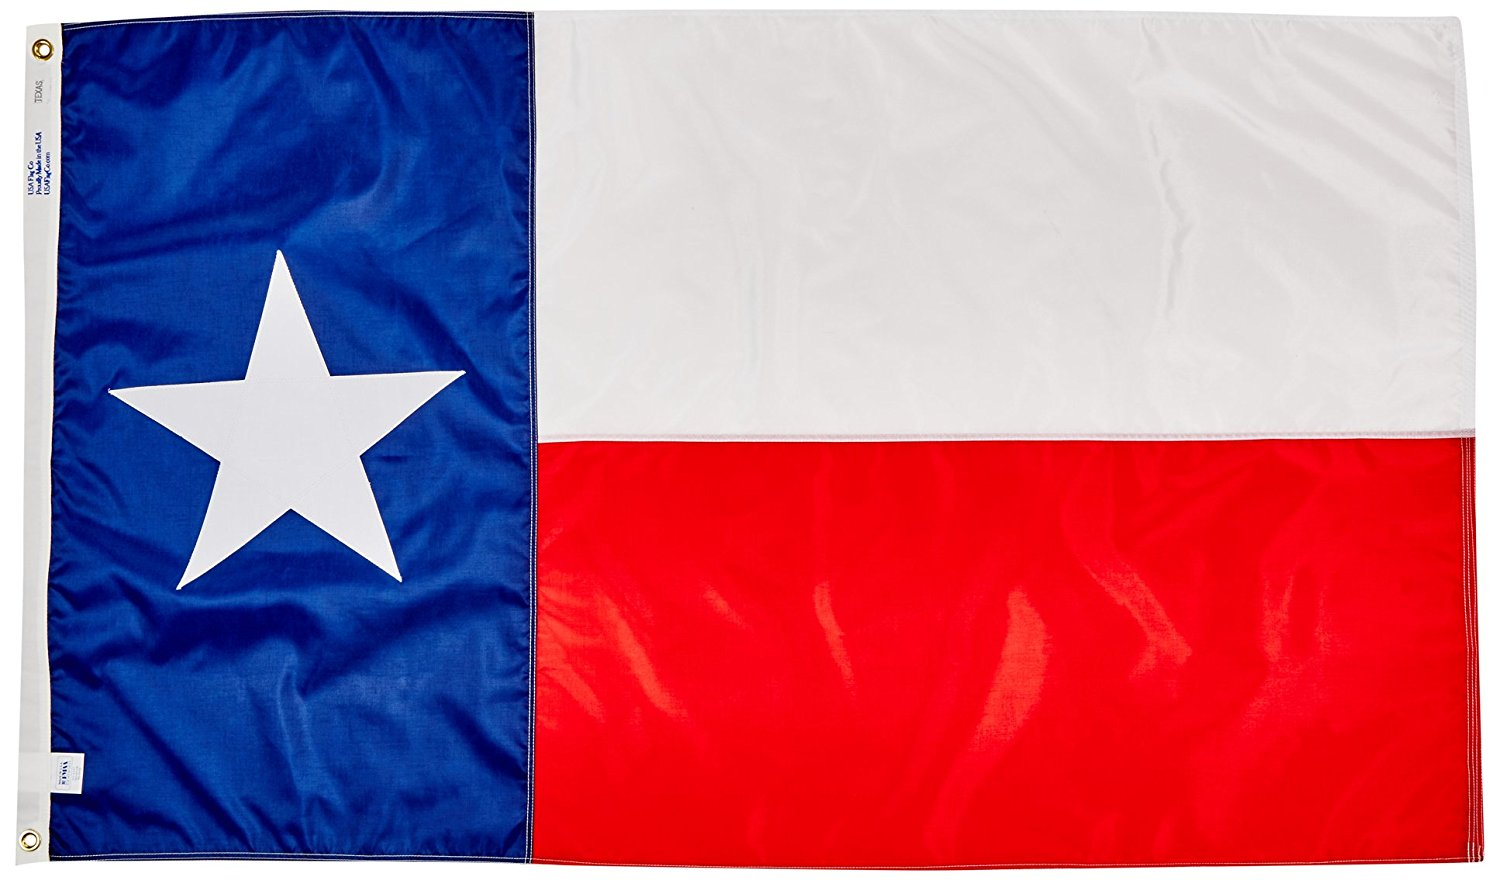 USA Flag Is 100% American Made: The Best Texas State Flag with Made In The United States of America, 3 By 5 Foot